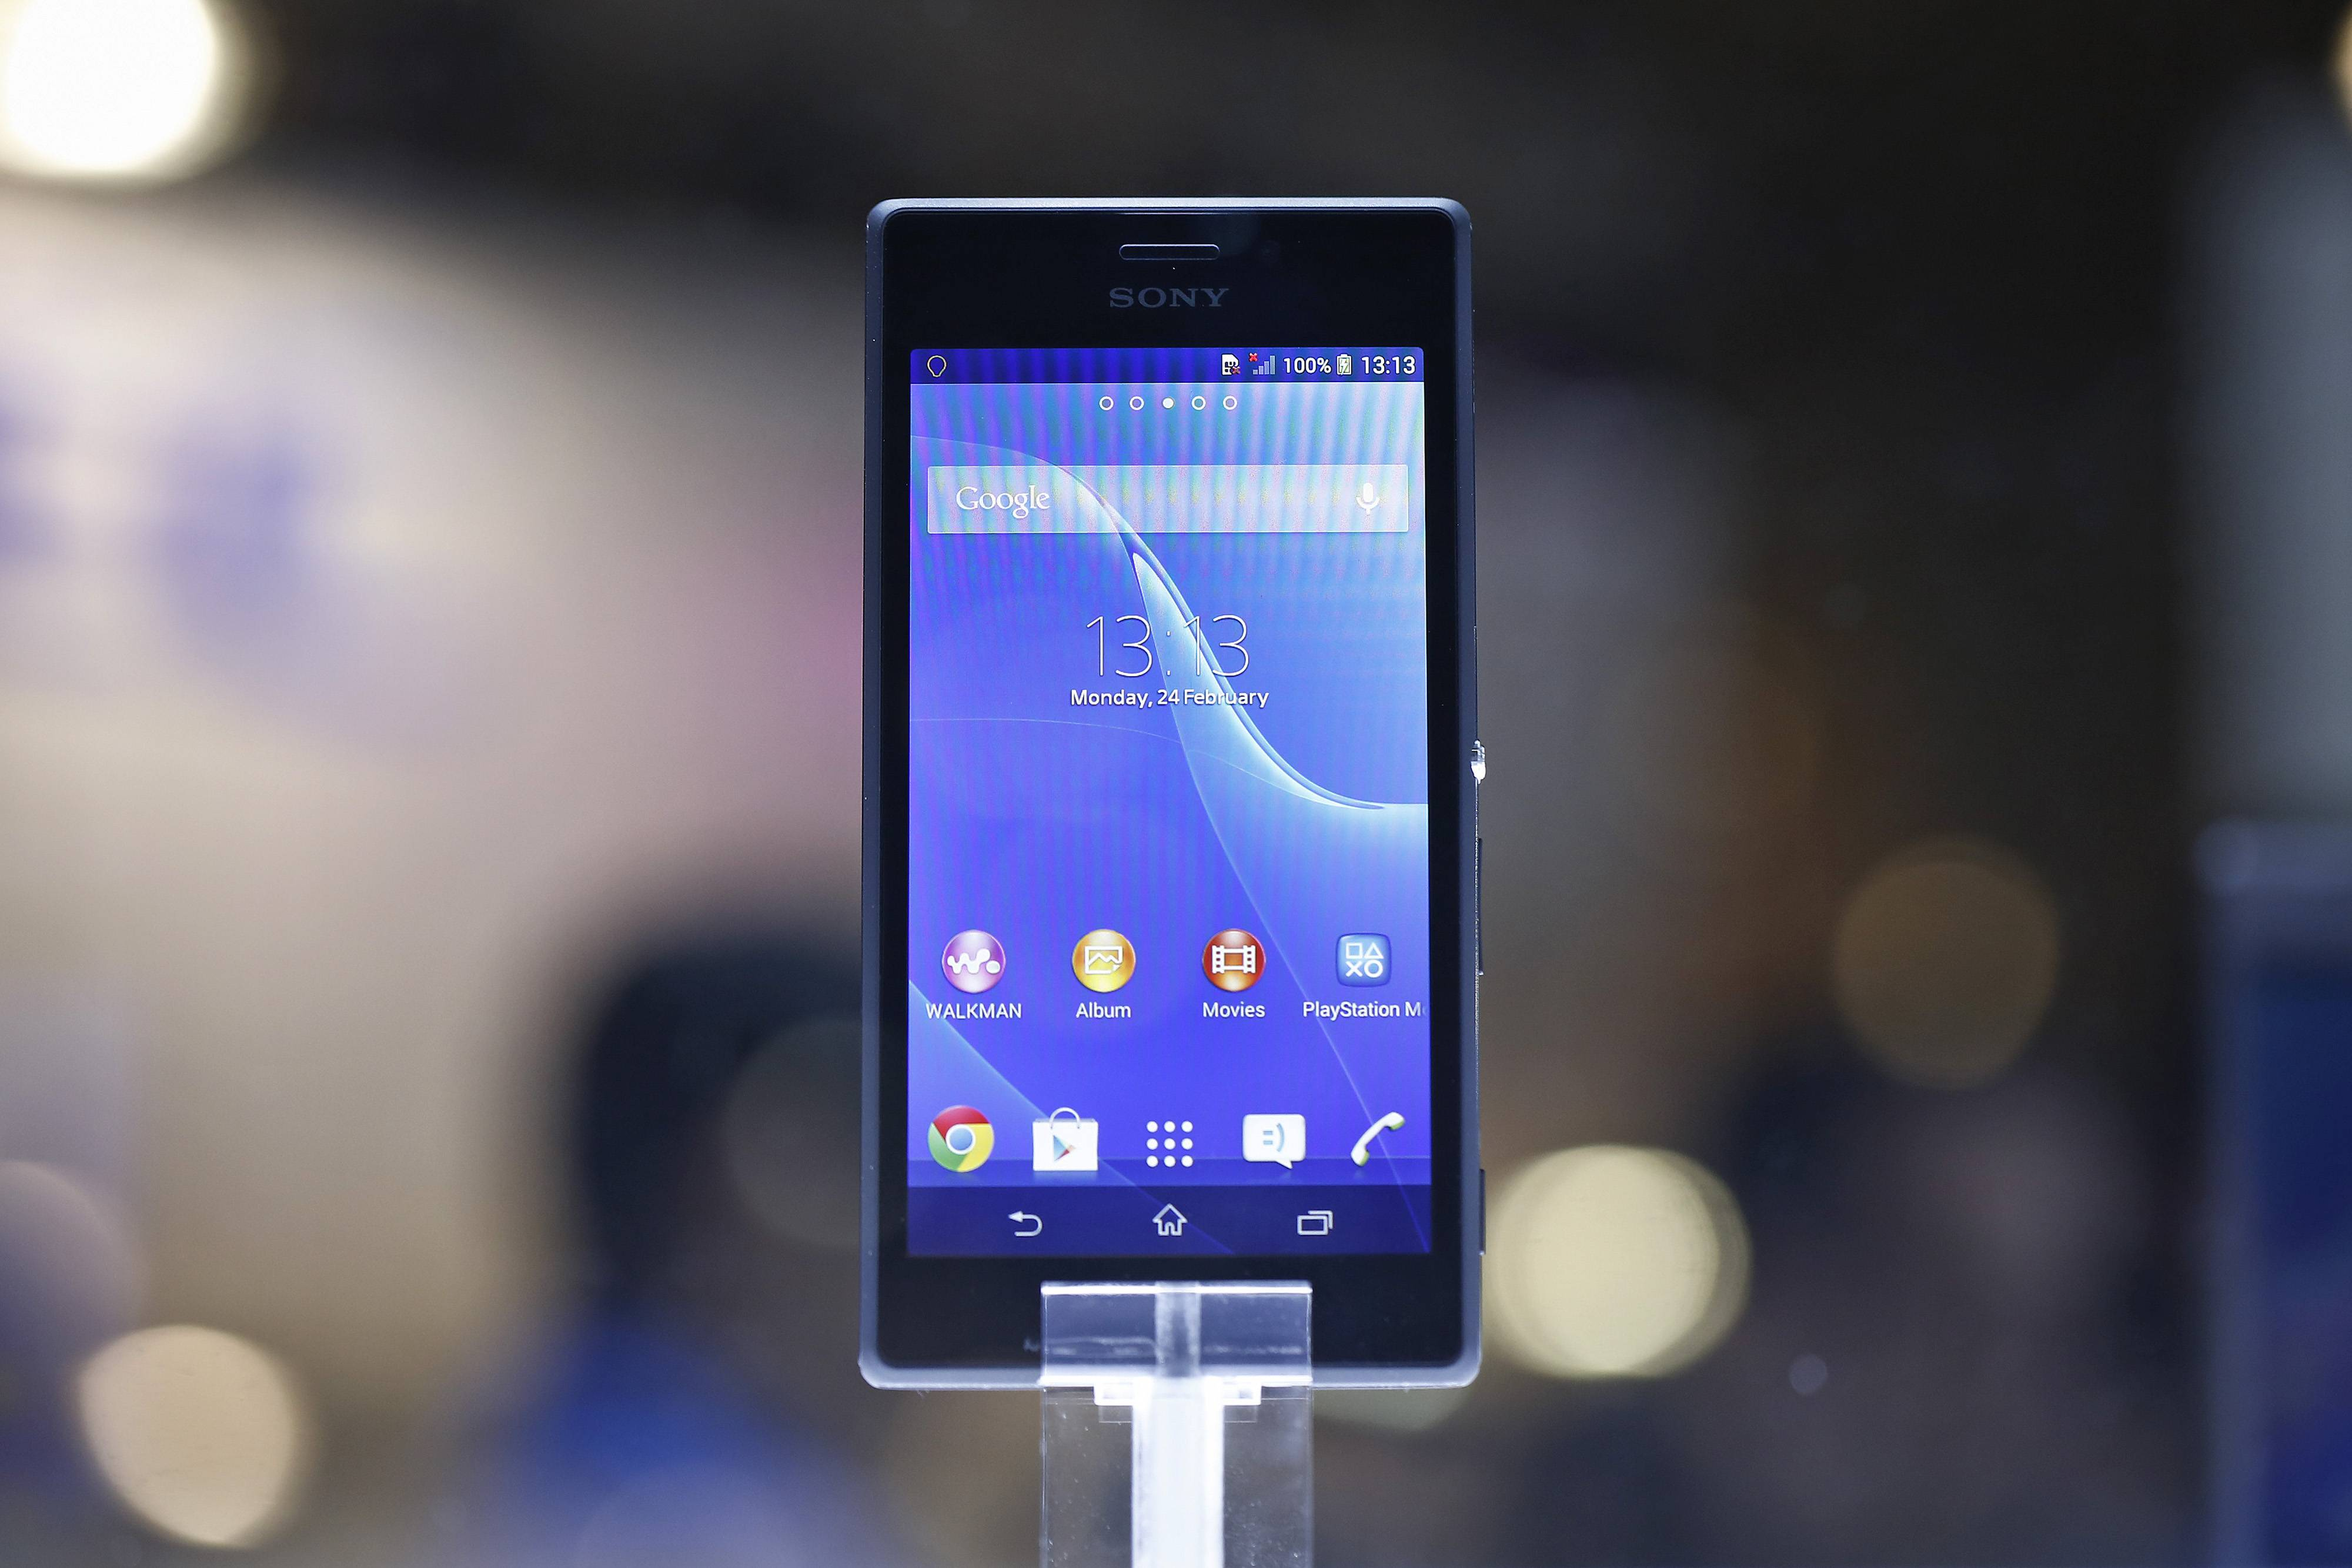 A Sony Xperia Z2 smartphone sits on display at the Sony Corp. pavilion on the opening day of the Mobile World Congress in Barcelona, Spain, on Monday, Feb. 24, 2014.